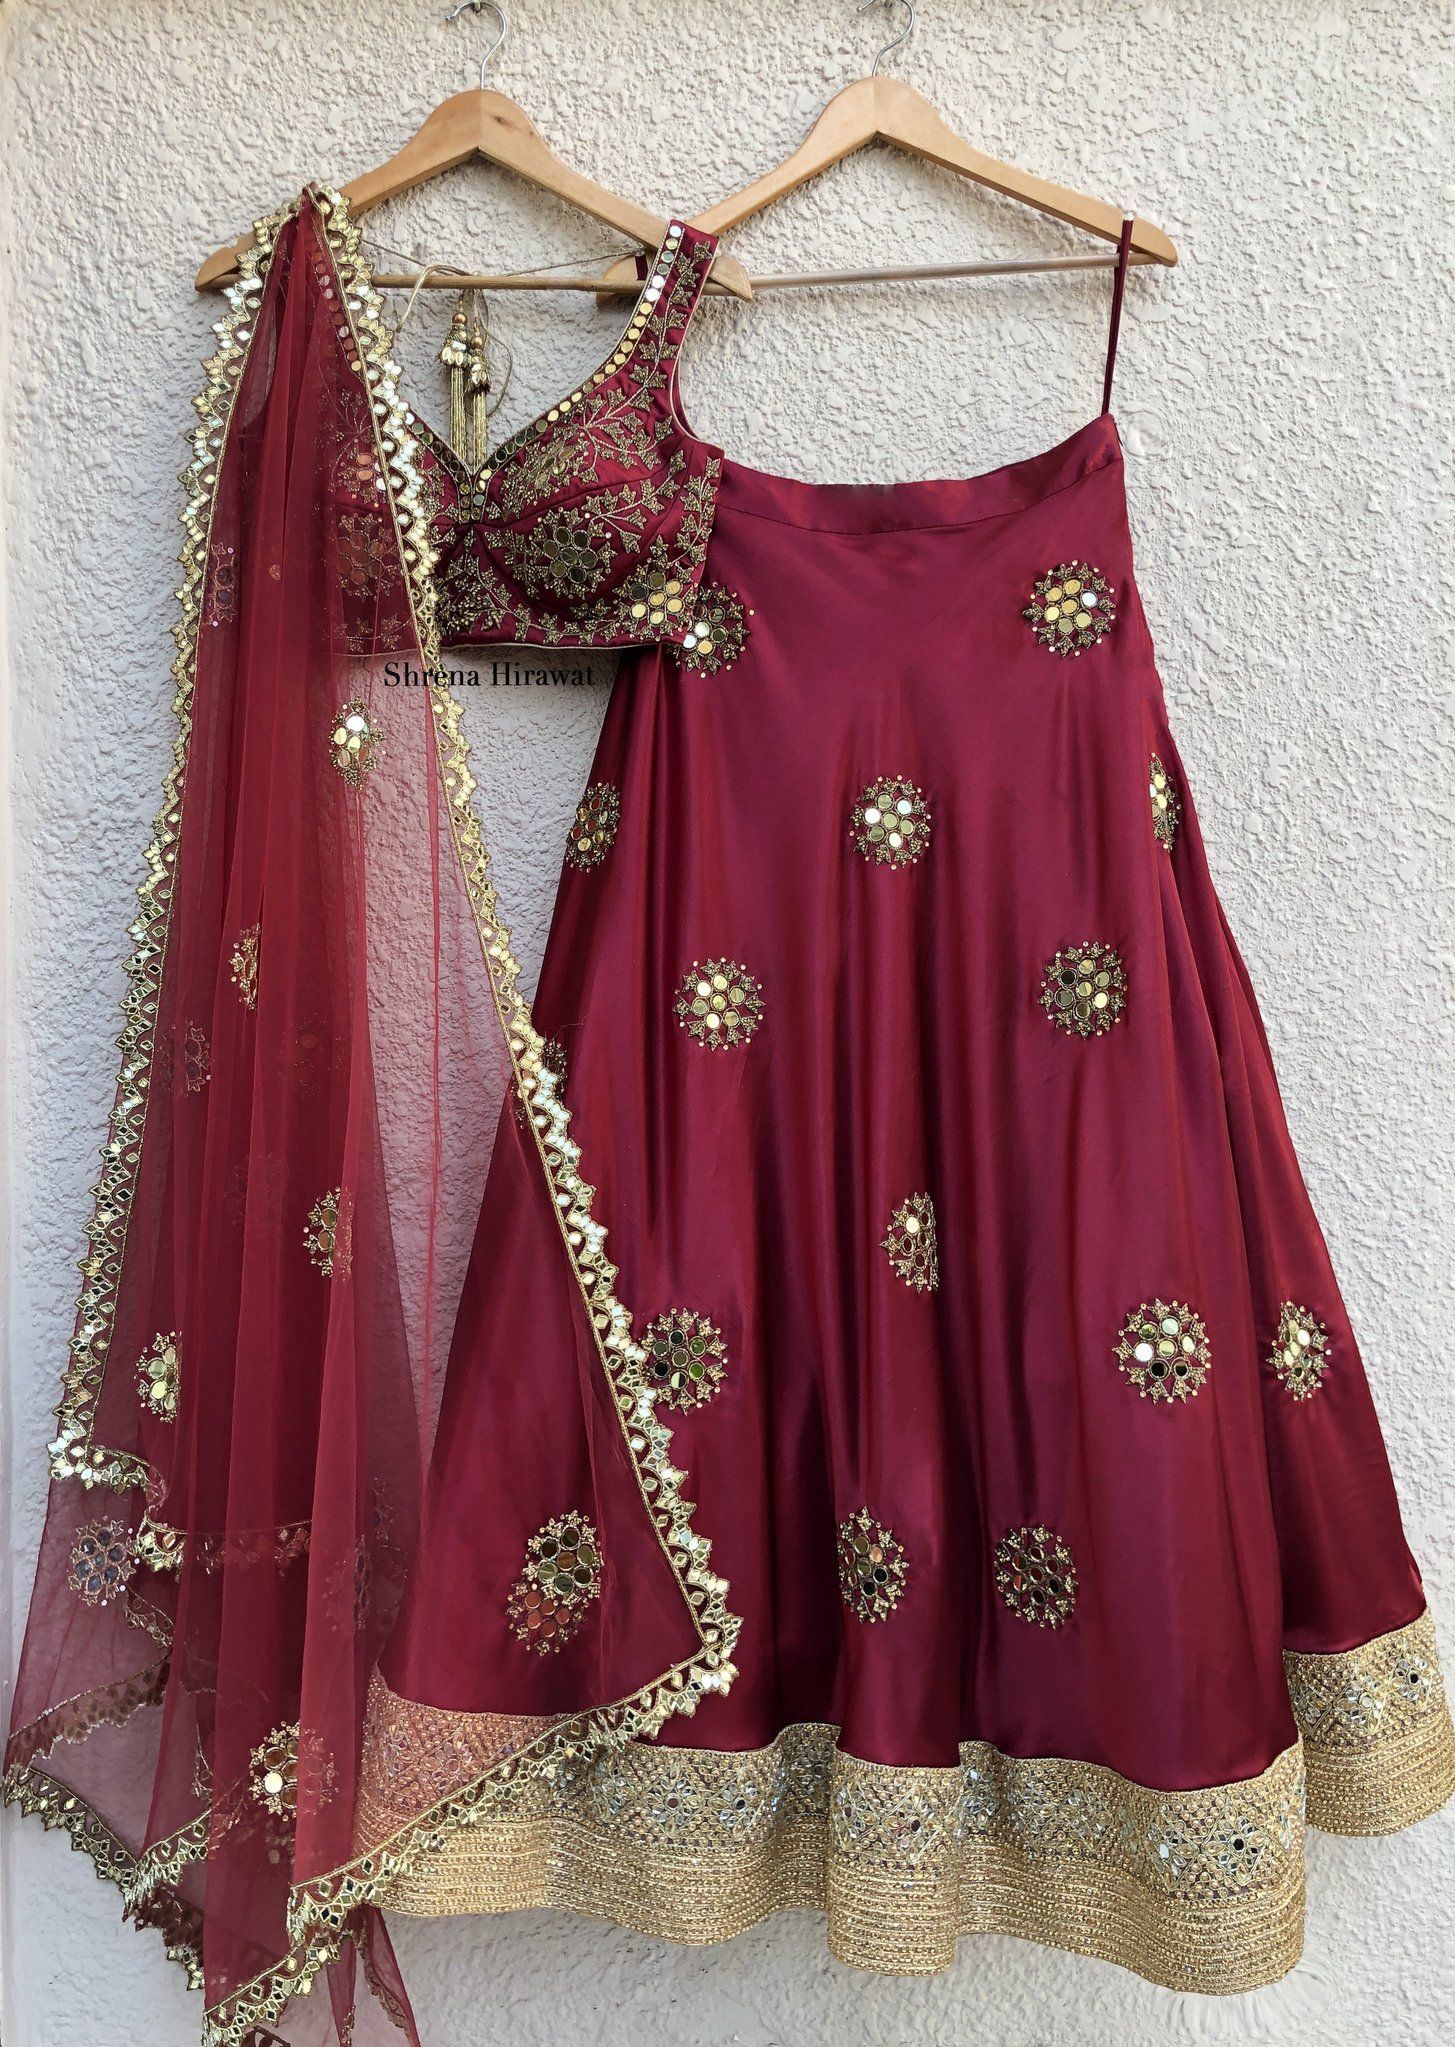 Hetal Ponda Selection Lehenga Designs Indian Designer Outfits Lehnga Designs